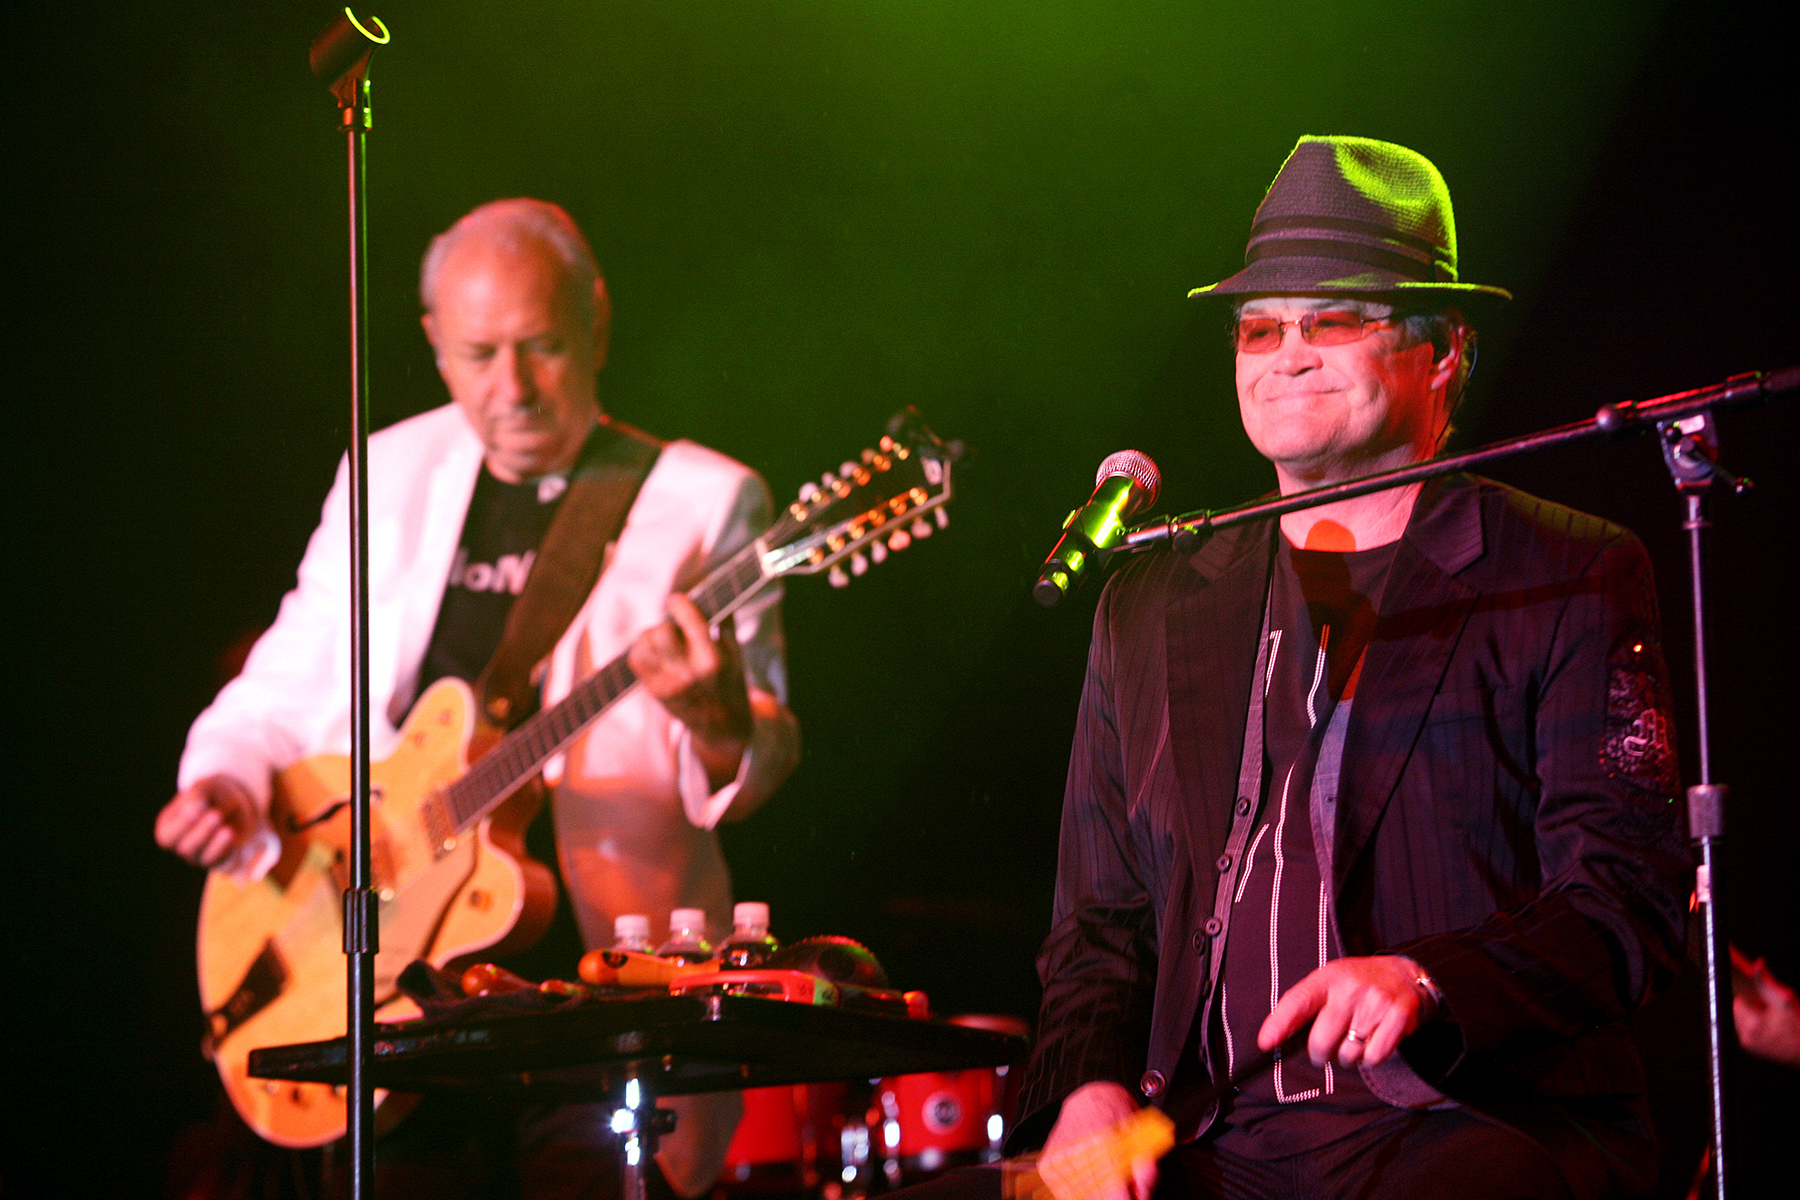 LAS VEGAS - AUGUST 10:  In this photo provided by the Las Vegas News Bureau, Michael Nesmith and Micky Dolenz of The Monkees perform at Green Valley Ranch on August 10, 2013 in Las Vegas, Nevada. (Photo by George Bekich II/Las Vegas News Bureau via Getty Images)